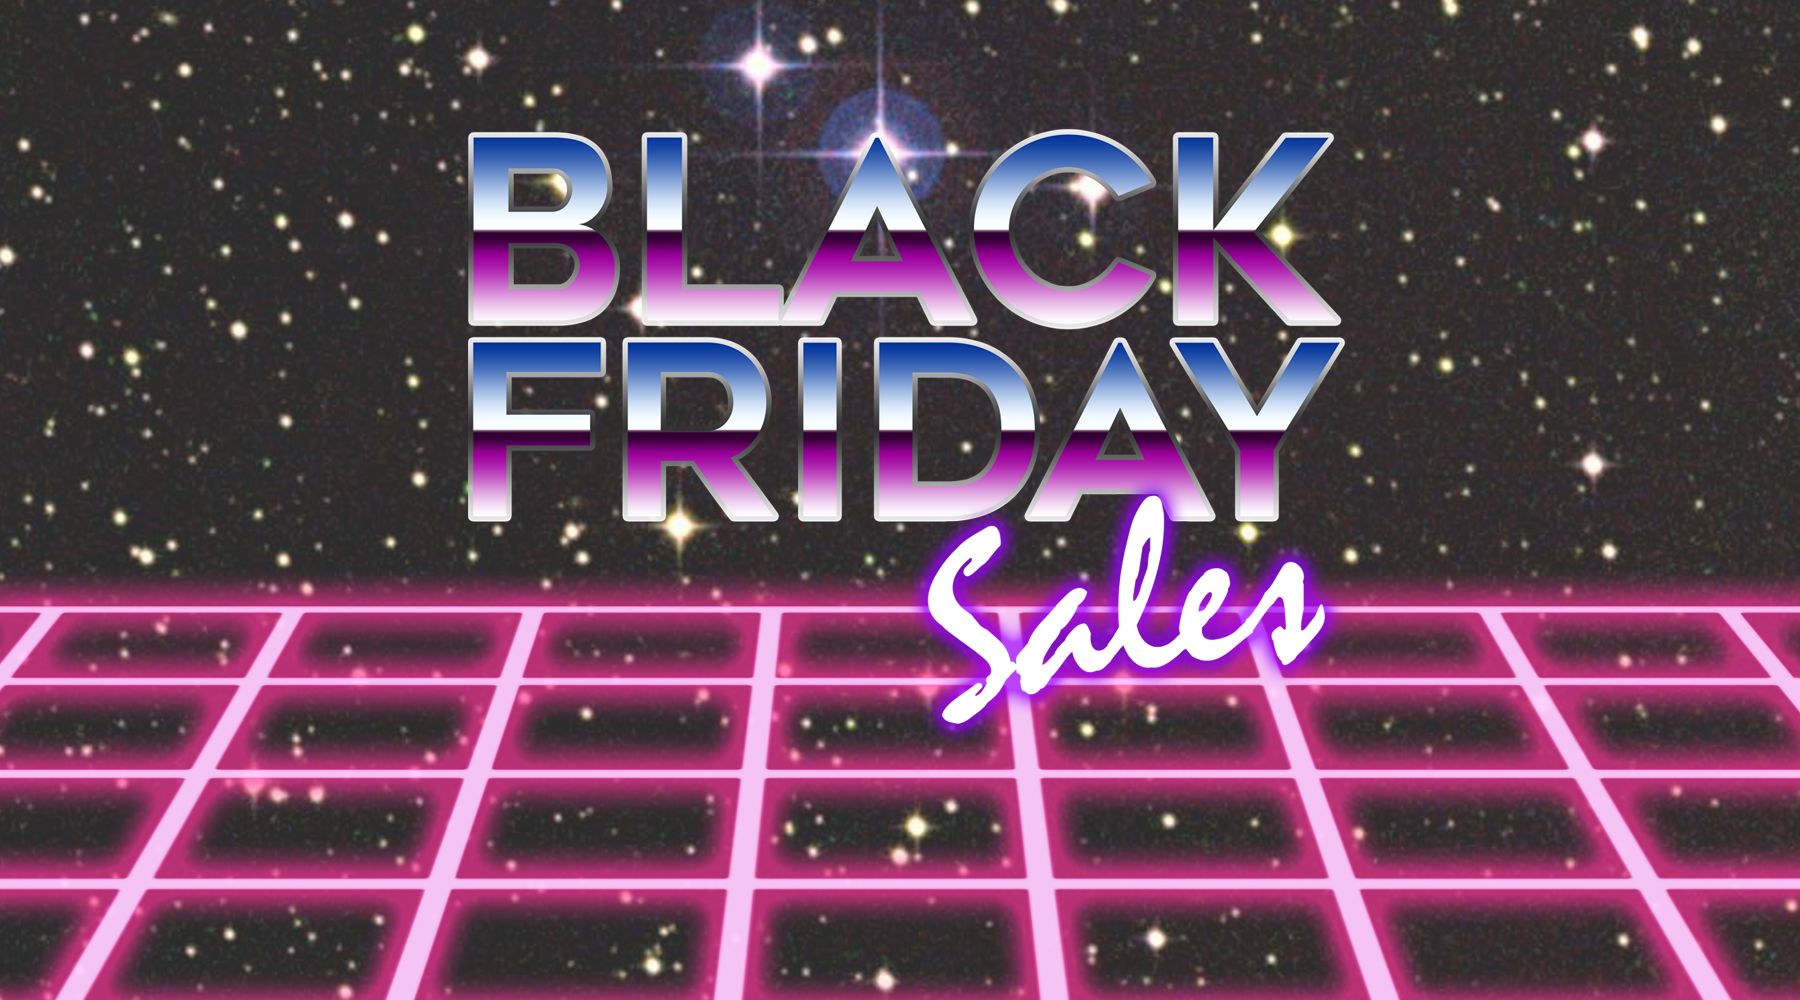 Check out our online Black Friday sales starting at 12 am on Thanksgiving!